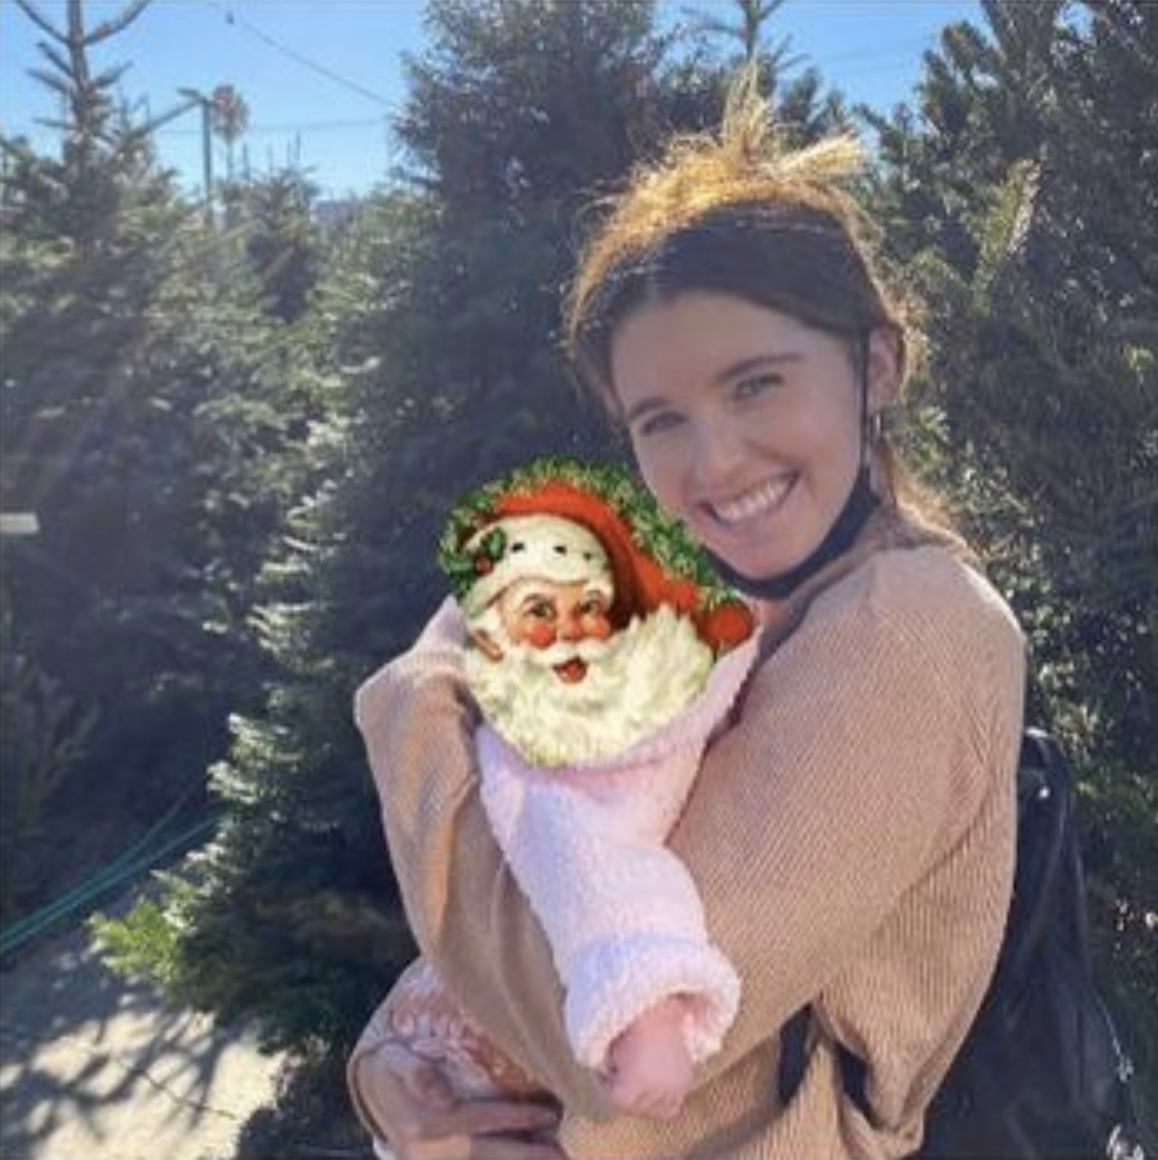 Katherine Schwarzenegger stands in front of Christmas trees, holding a baby, whose face is covered with an image of Santa Claus's face with a hat and beard